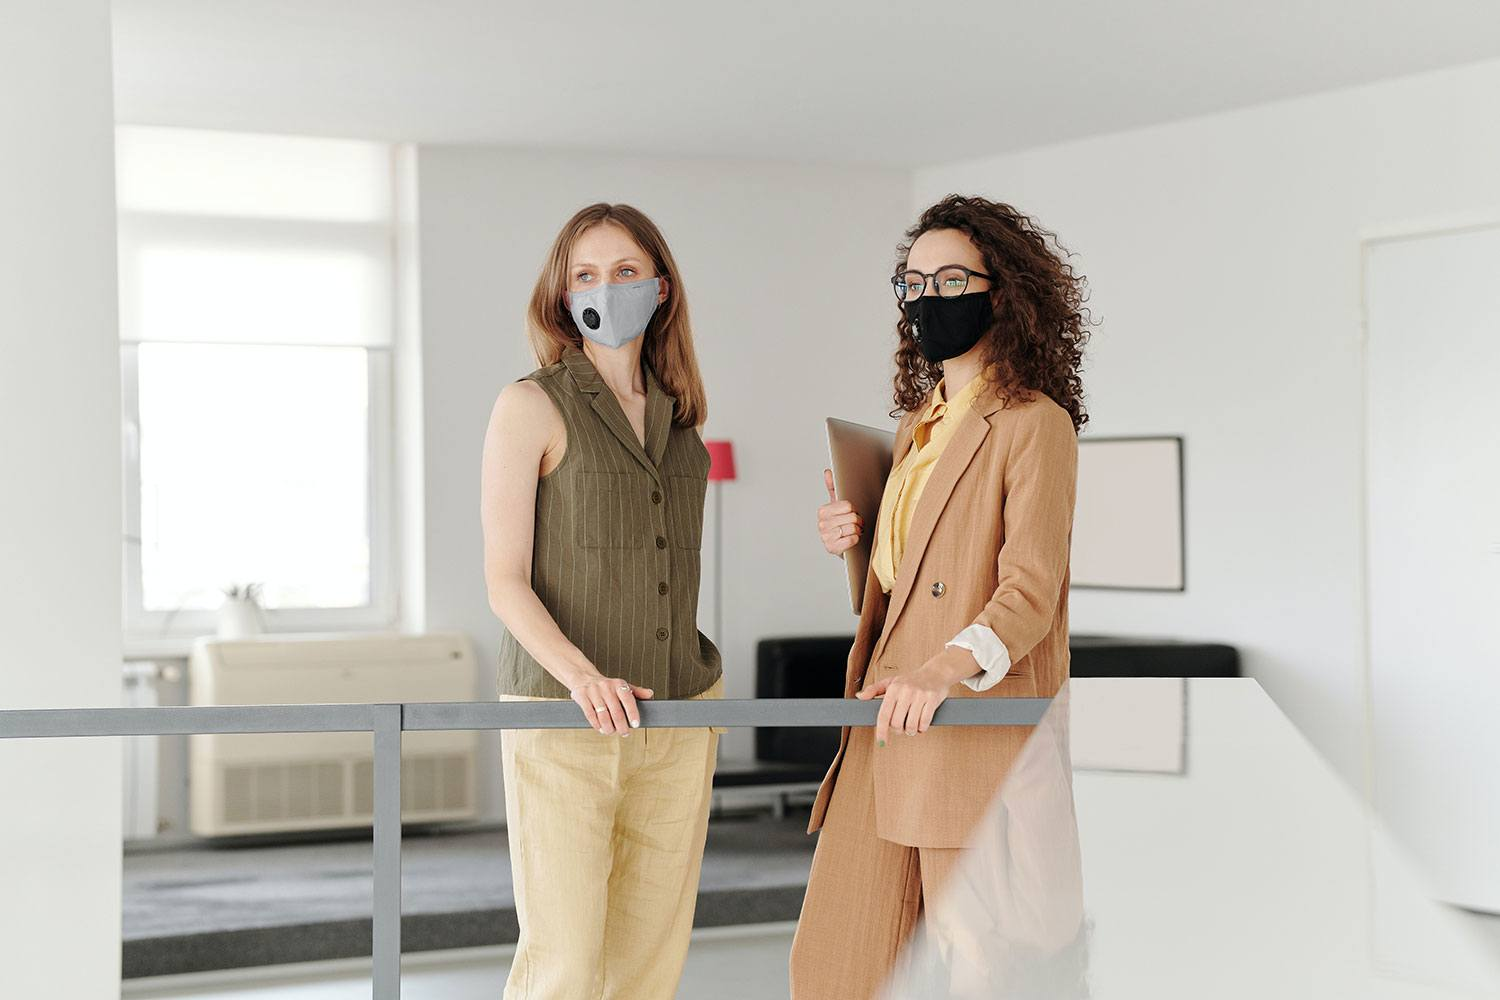 two female co-workers in office with Covid masks on